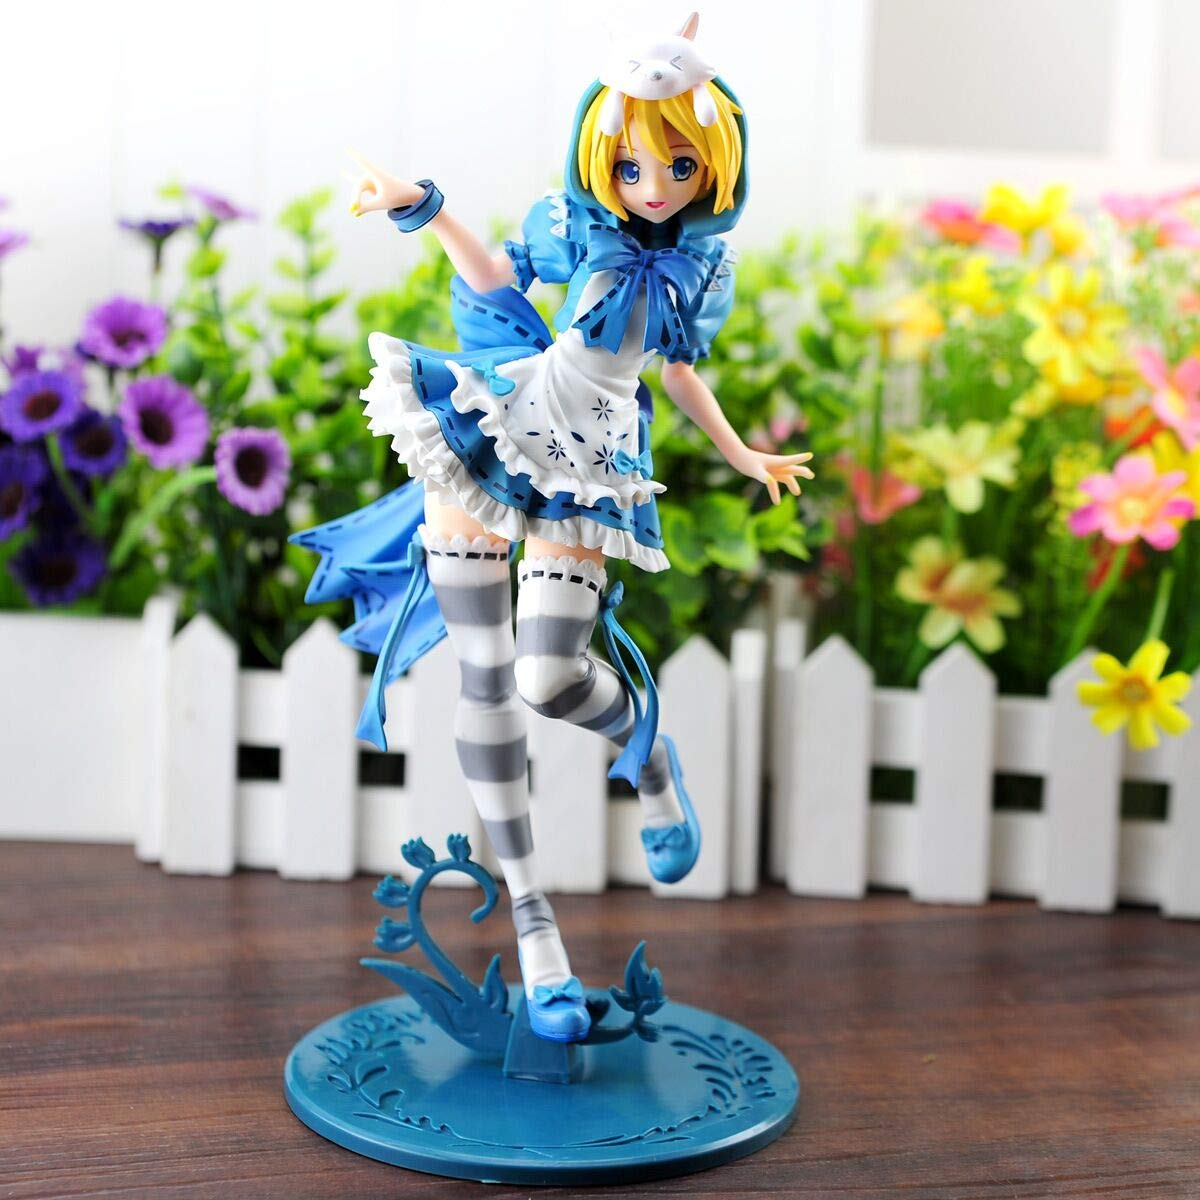 Amazon.com: Dingwen TO025 - Figura de acción de Hatsune Miku ...